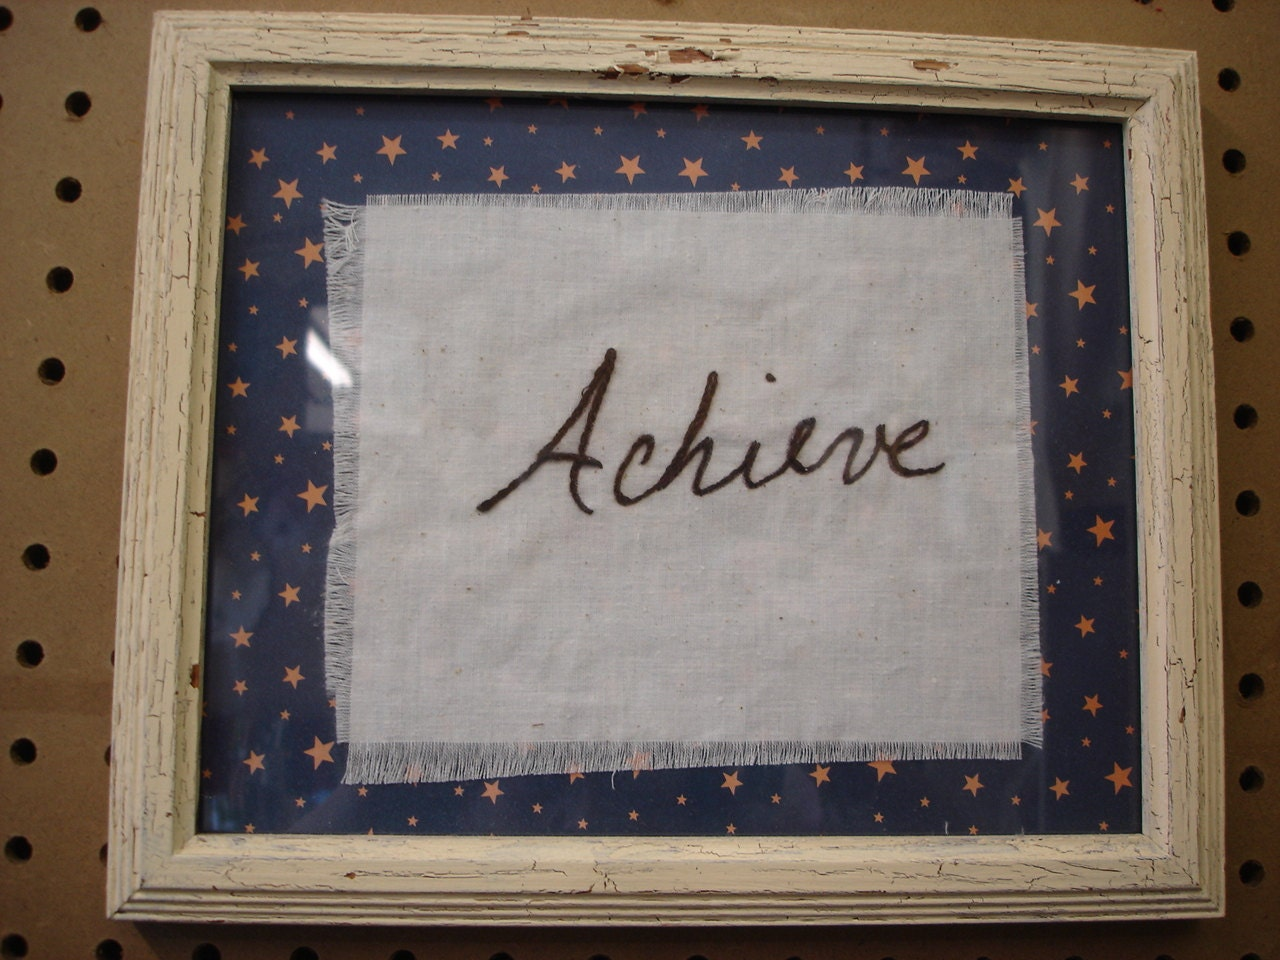 Inspiring,Phrases,Hand,Stitched,Achieve,Framed,Housewares,Home_Decor,home_decor,phrase,hand_stitch,inspiring,inspire,frame,framed_phrase,for_your_home,wall_decor,gift,houseware,reclaimed,wood,paper,fabric